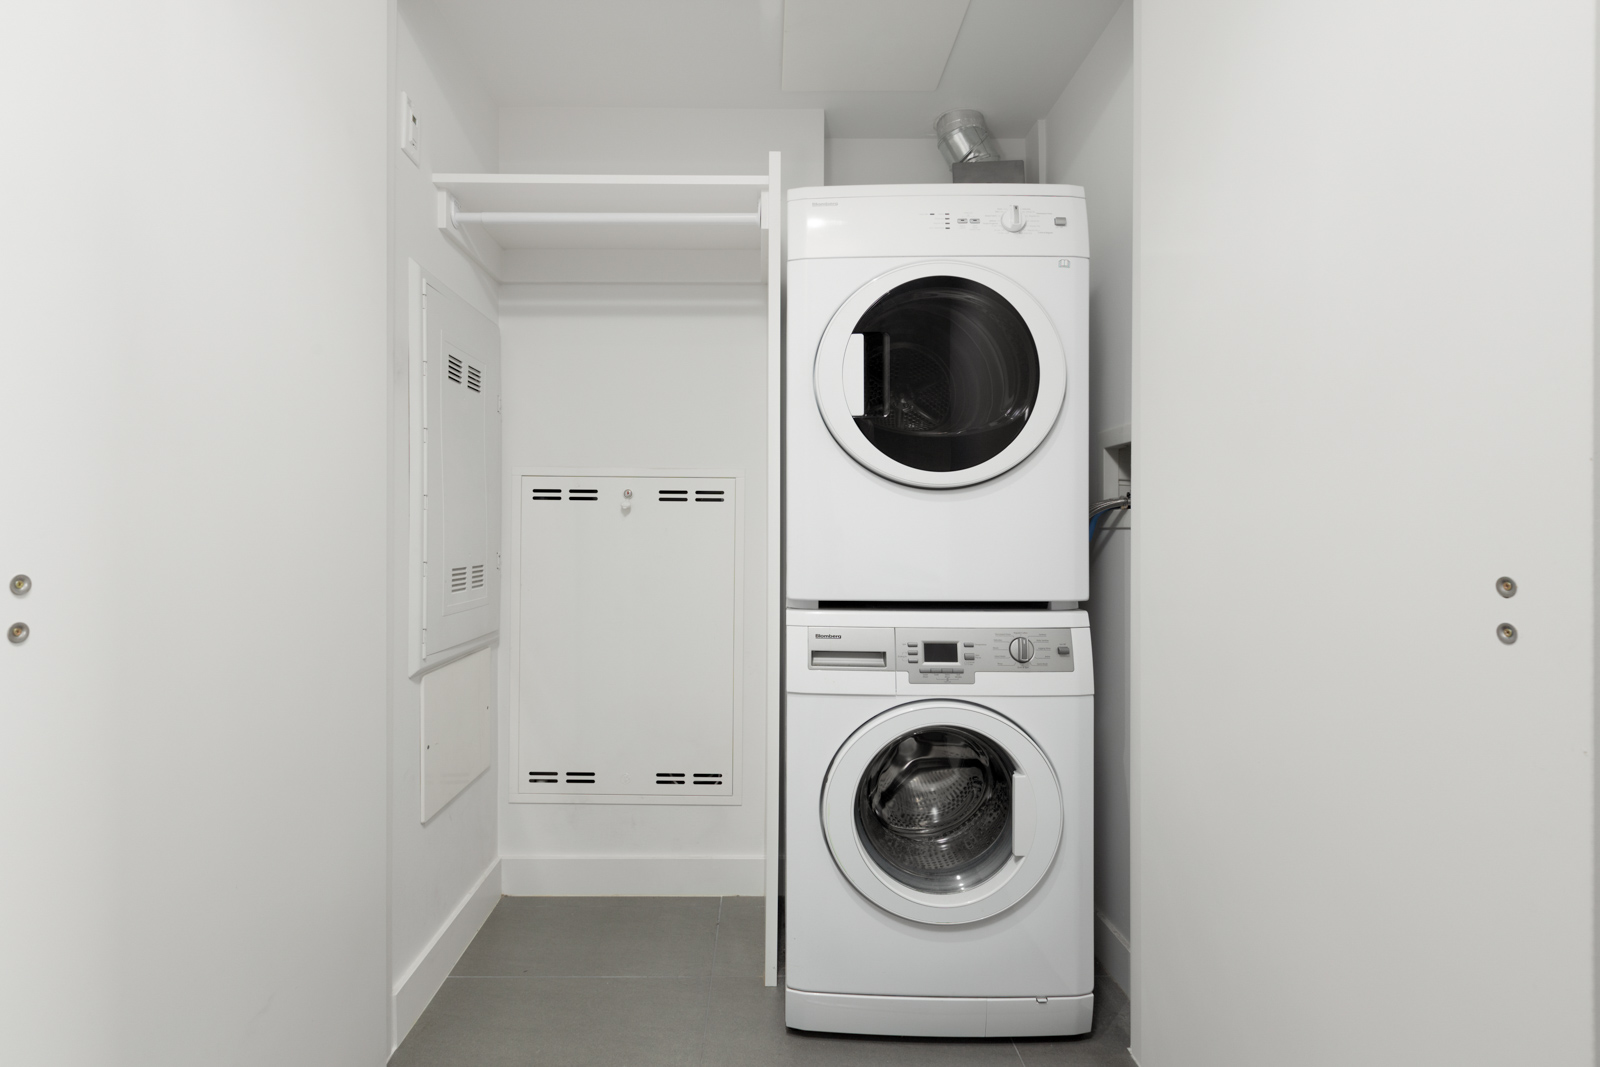 Storage closet with in-suite laundry in a rental condo in Vancouver offered by Birds Nest Properties.